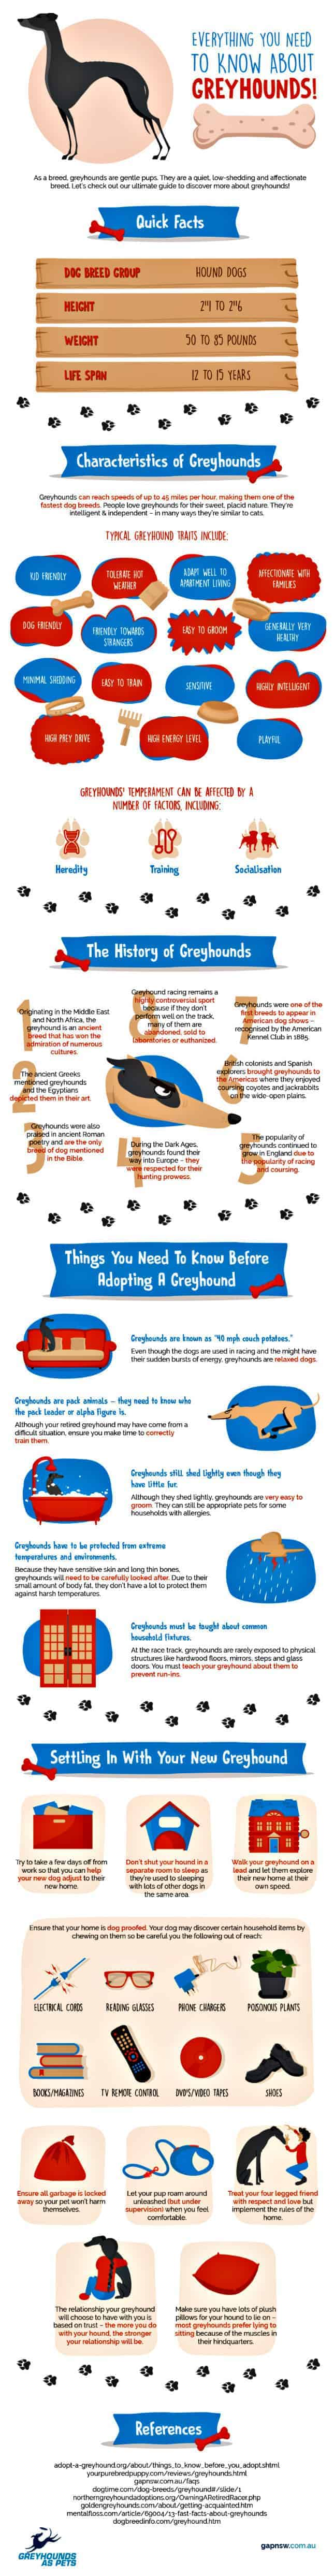 Greyhound graphic